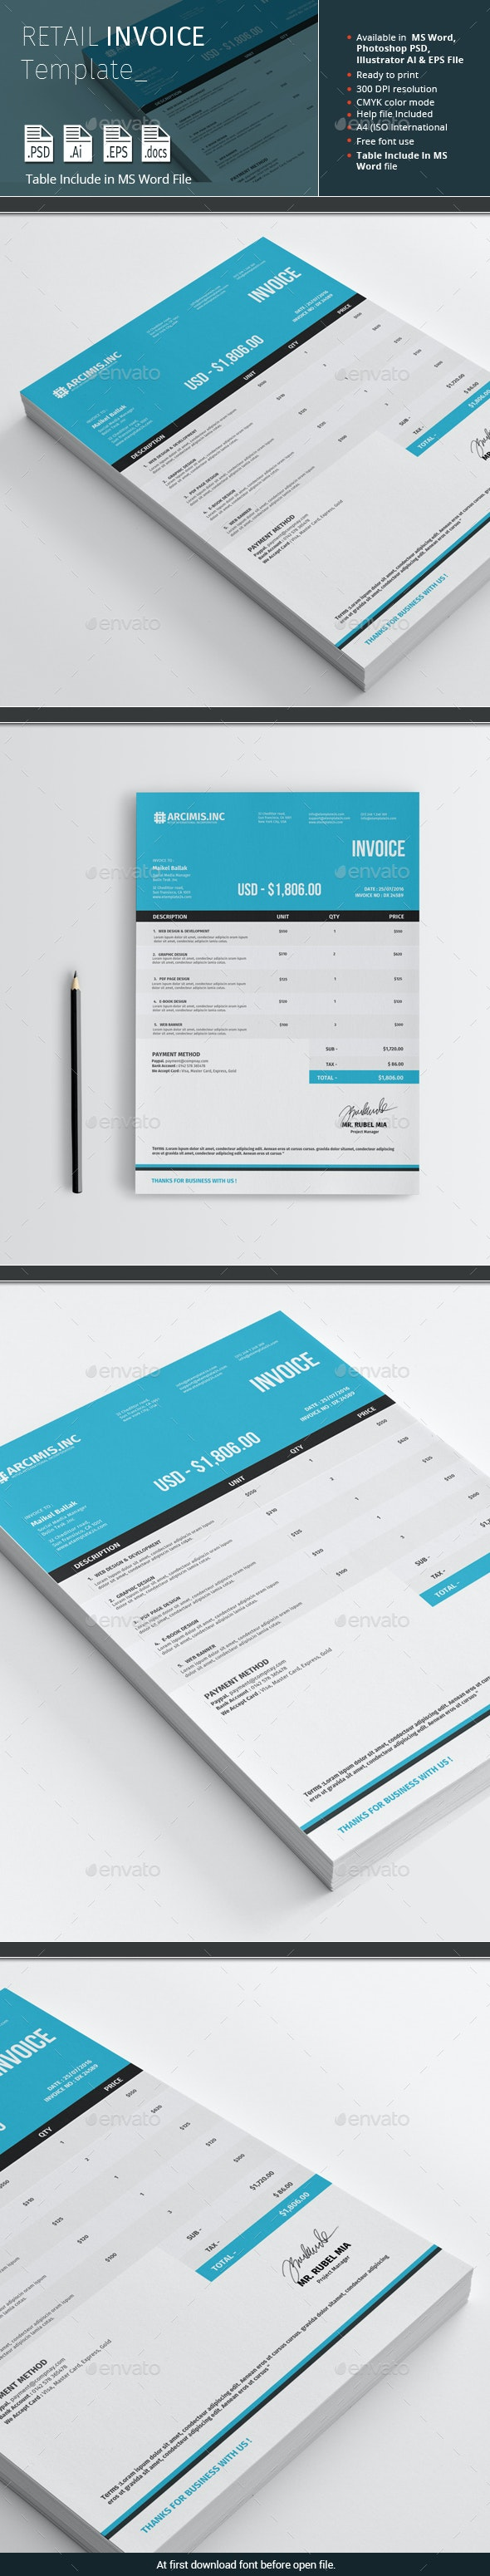 Retail Invoice Template - Proposals & Invoices Stationery